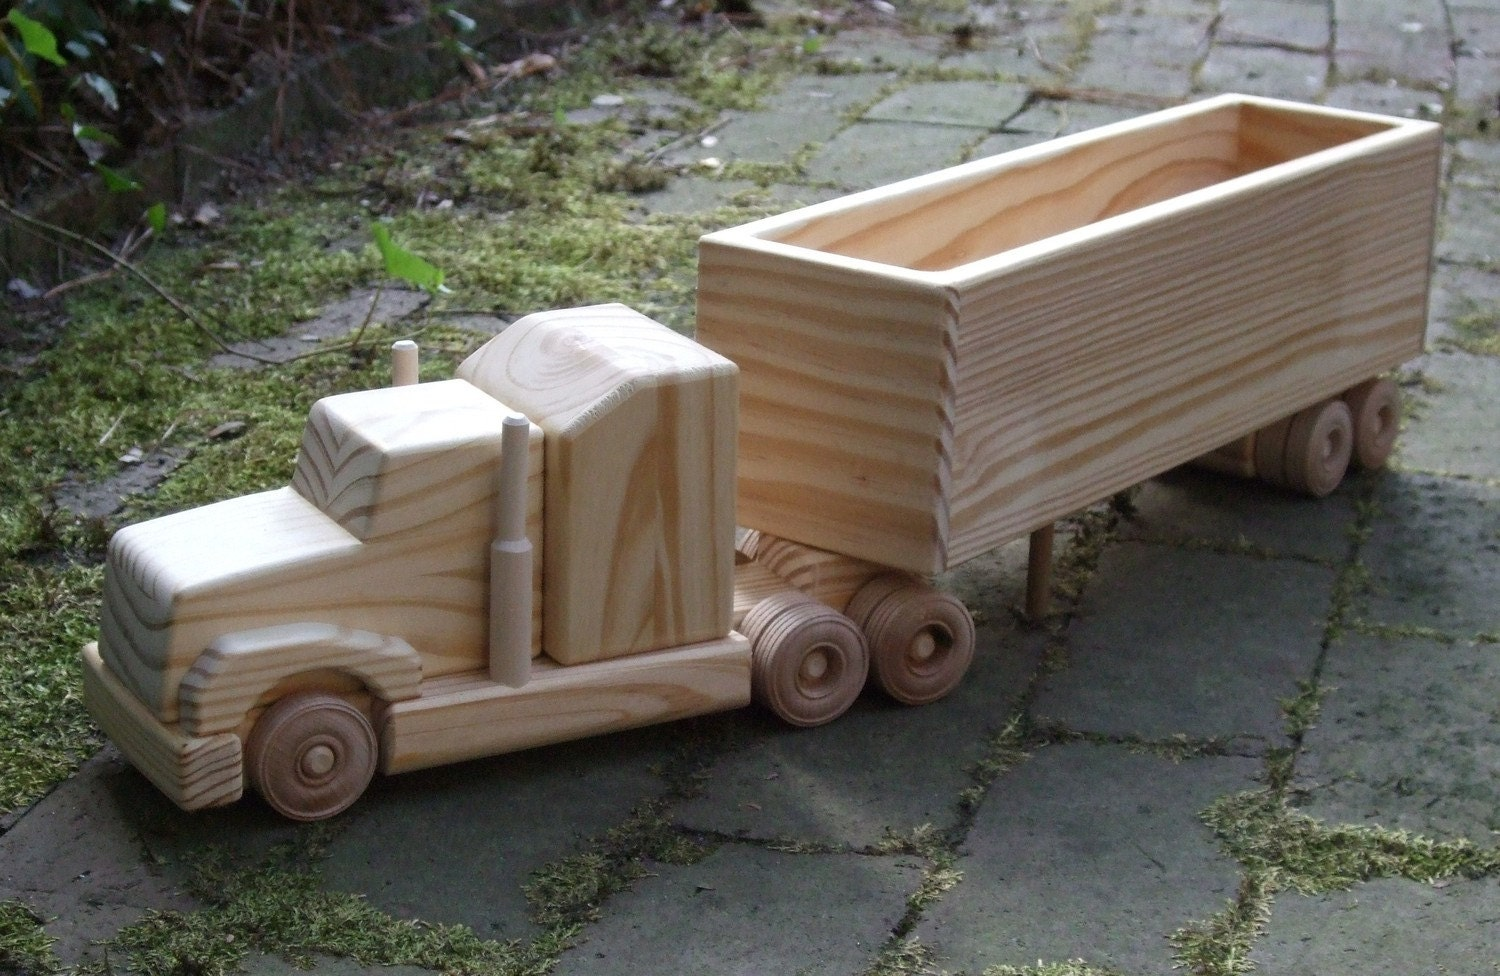 ... jpeg wooden semi toy truck plans 553 x 356 35 kb jpeg wooden toy truck